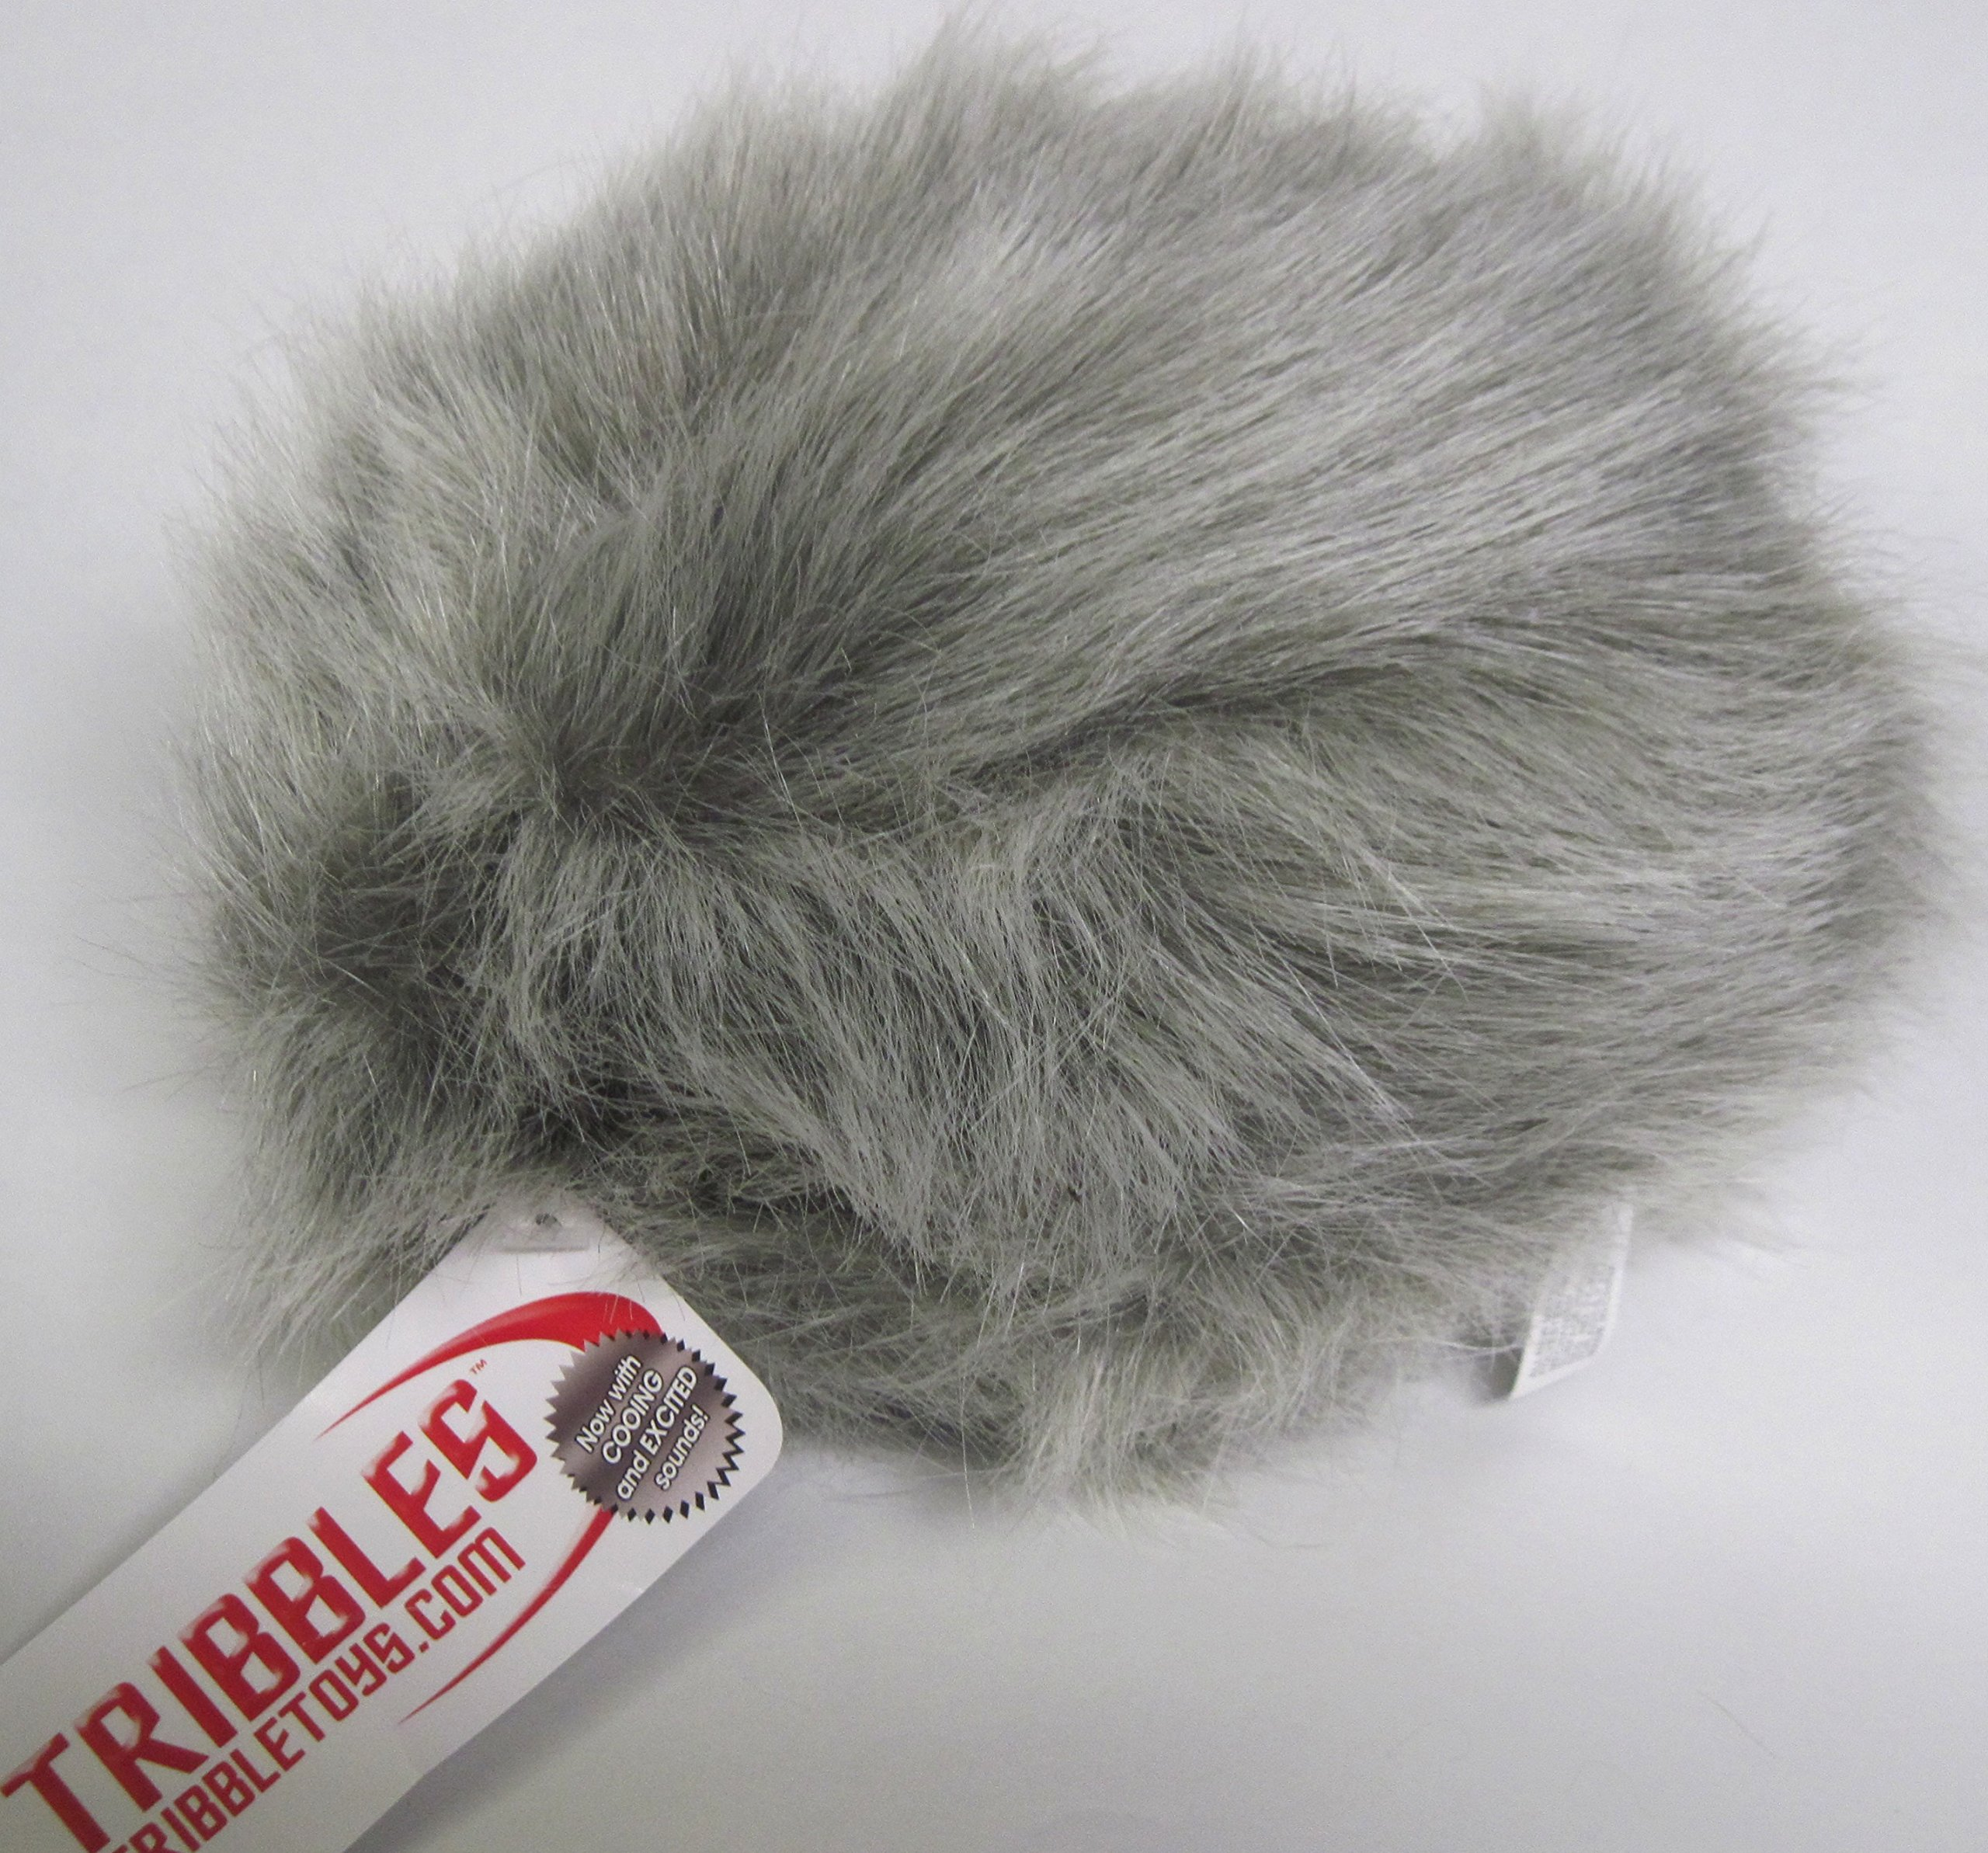 Star Trek Gray Tribble - New Dual Sound Version - Large Size by Tribble Toys (Image #1)